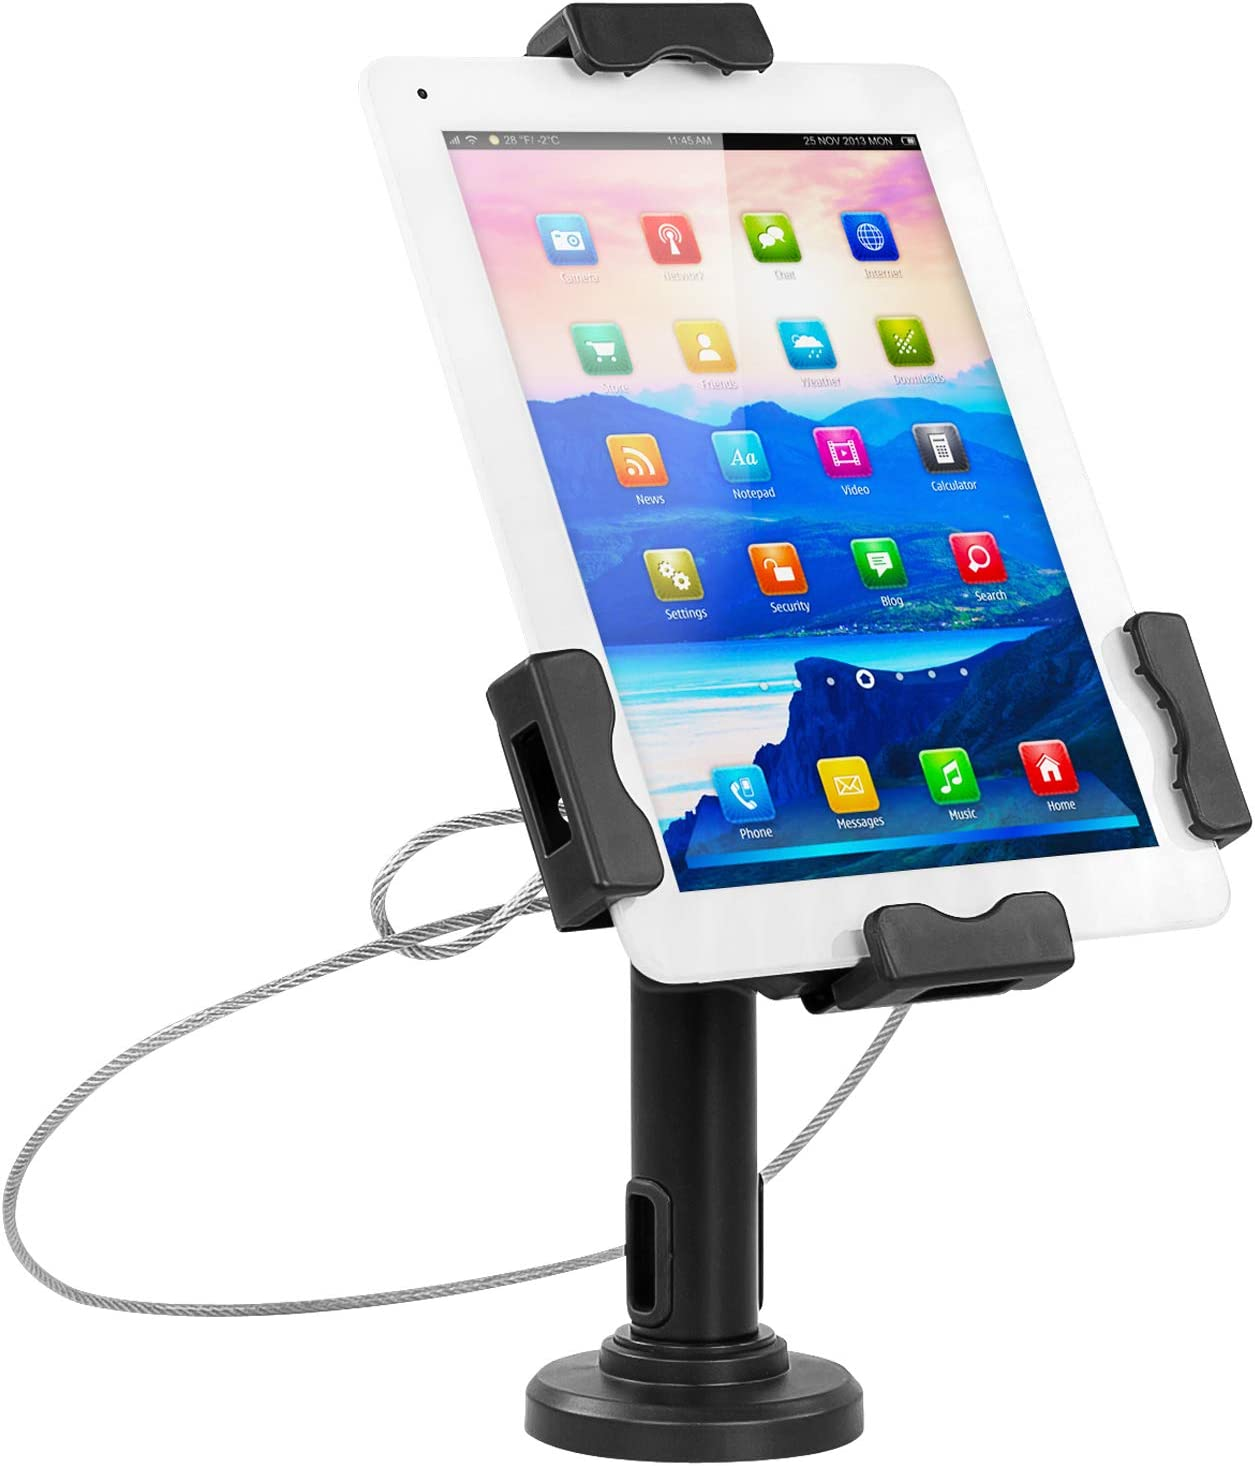 "Mount-It! Secure Universal Tablet POS Kiosk with Wall Bracket Add-on | Locking Tablet Stand with Adjustable Clamp for iPad 7, iPad Mini, Samsung Galaxy Tab, Surface Go & 7.9""- 10.5"" Tablets - MI-3784"